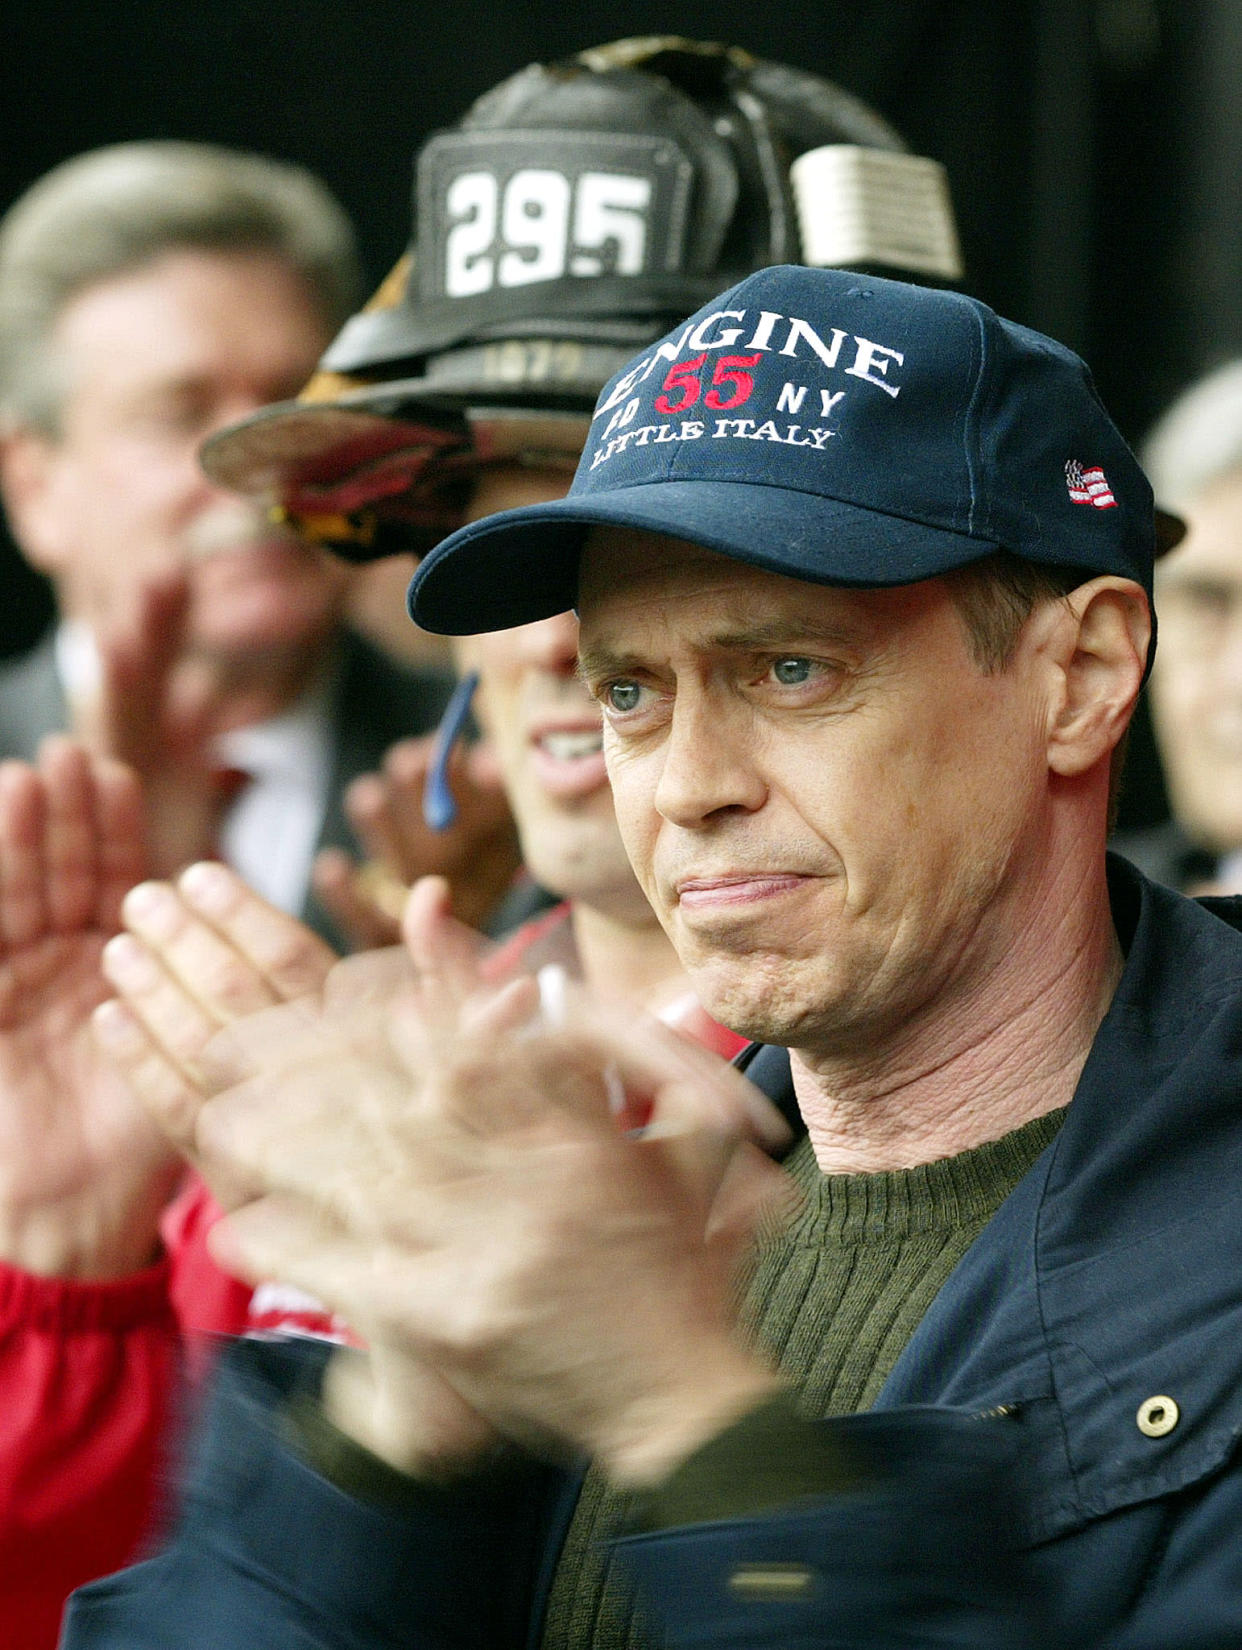 Actor Steve Buscemi applauds at a protest staged by firefighters in New York, October 11, 2002. The New York Firefighter Rally, organized by the Uniformed Firefighters Association, was held to protest current wages. The union rejected a proposal on October 10 to increase pay by 11.5 percent over 30 months. The president of the 9,000-member union said the members have been working without a contract for 29 months and deserve a larger raise. Buscemi is a former fireman. REUTERS/Shannon Stapleton  PM